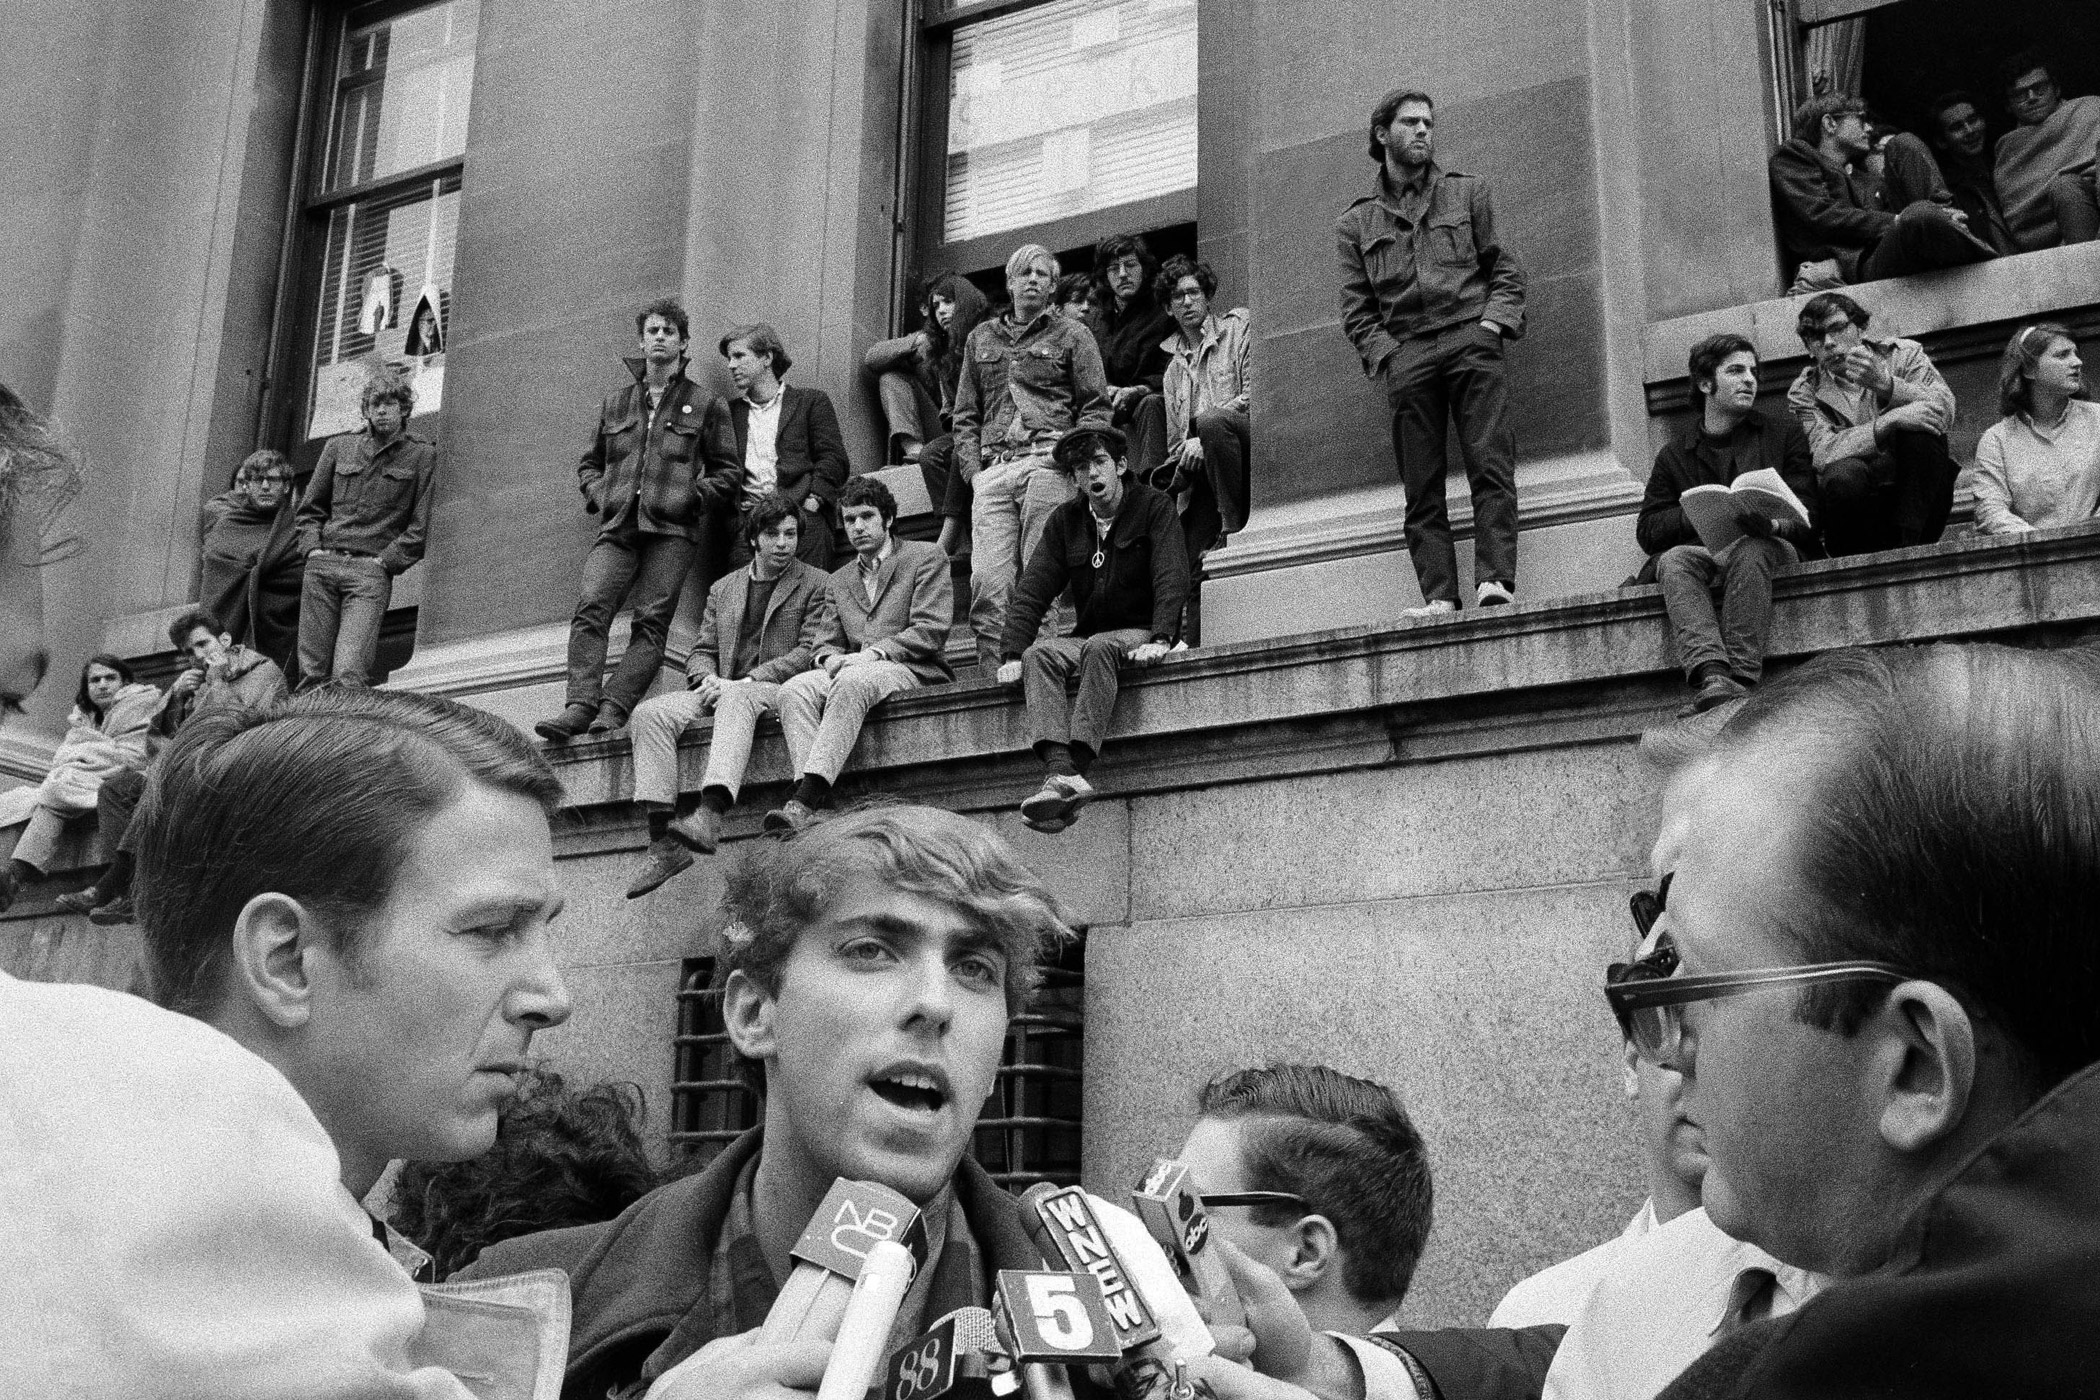 Mark Rudd, a leader of the student protest at Columbia University in New York, speaks to reporters as fellow students, rear, occupy the Low Memorial Library on April 25, 1968. Standing on ledge, center, with hands in pockets, is Juan Gonzalez, another of the student leaders.  The 1968 Columbia University Protests targeted a variety of issues, most notably the Vietnam War. In the aftermath, two of the demands set by students were met: Columbia ended its ties to a controversial weapons-related think tank, and halted a plan to build a disputed gym.